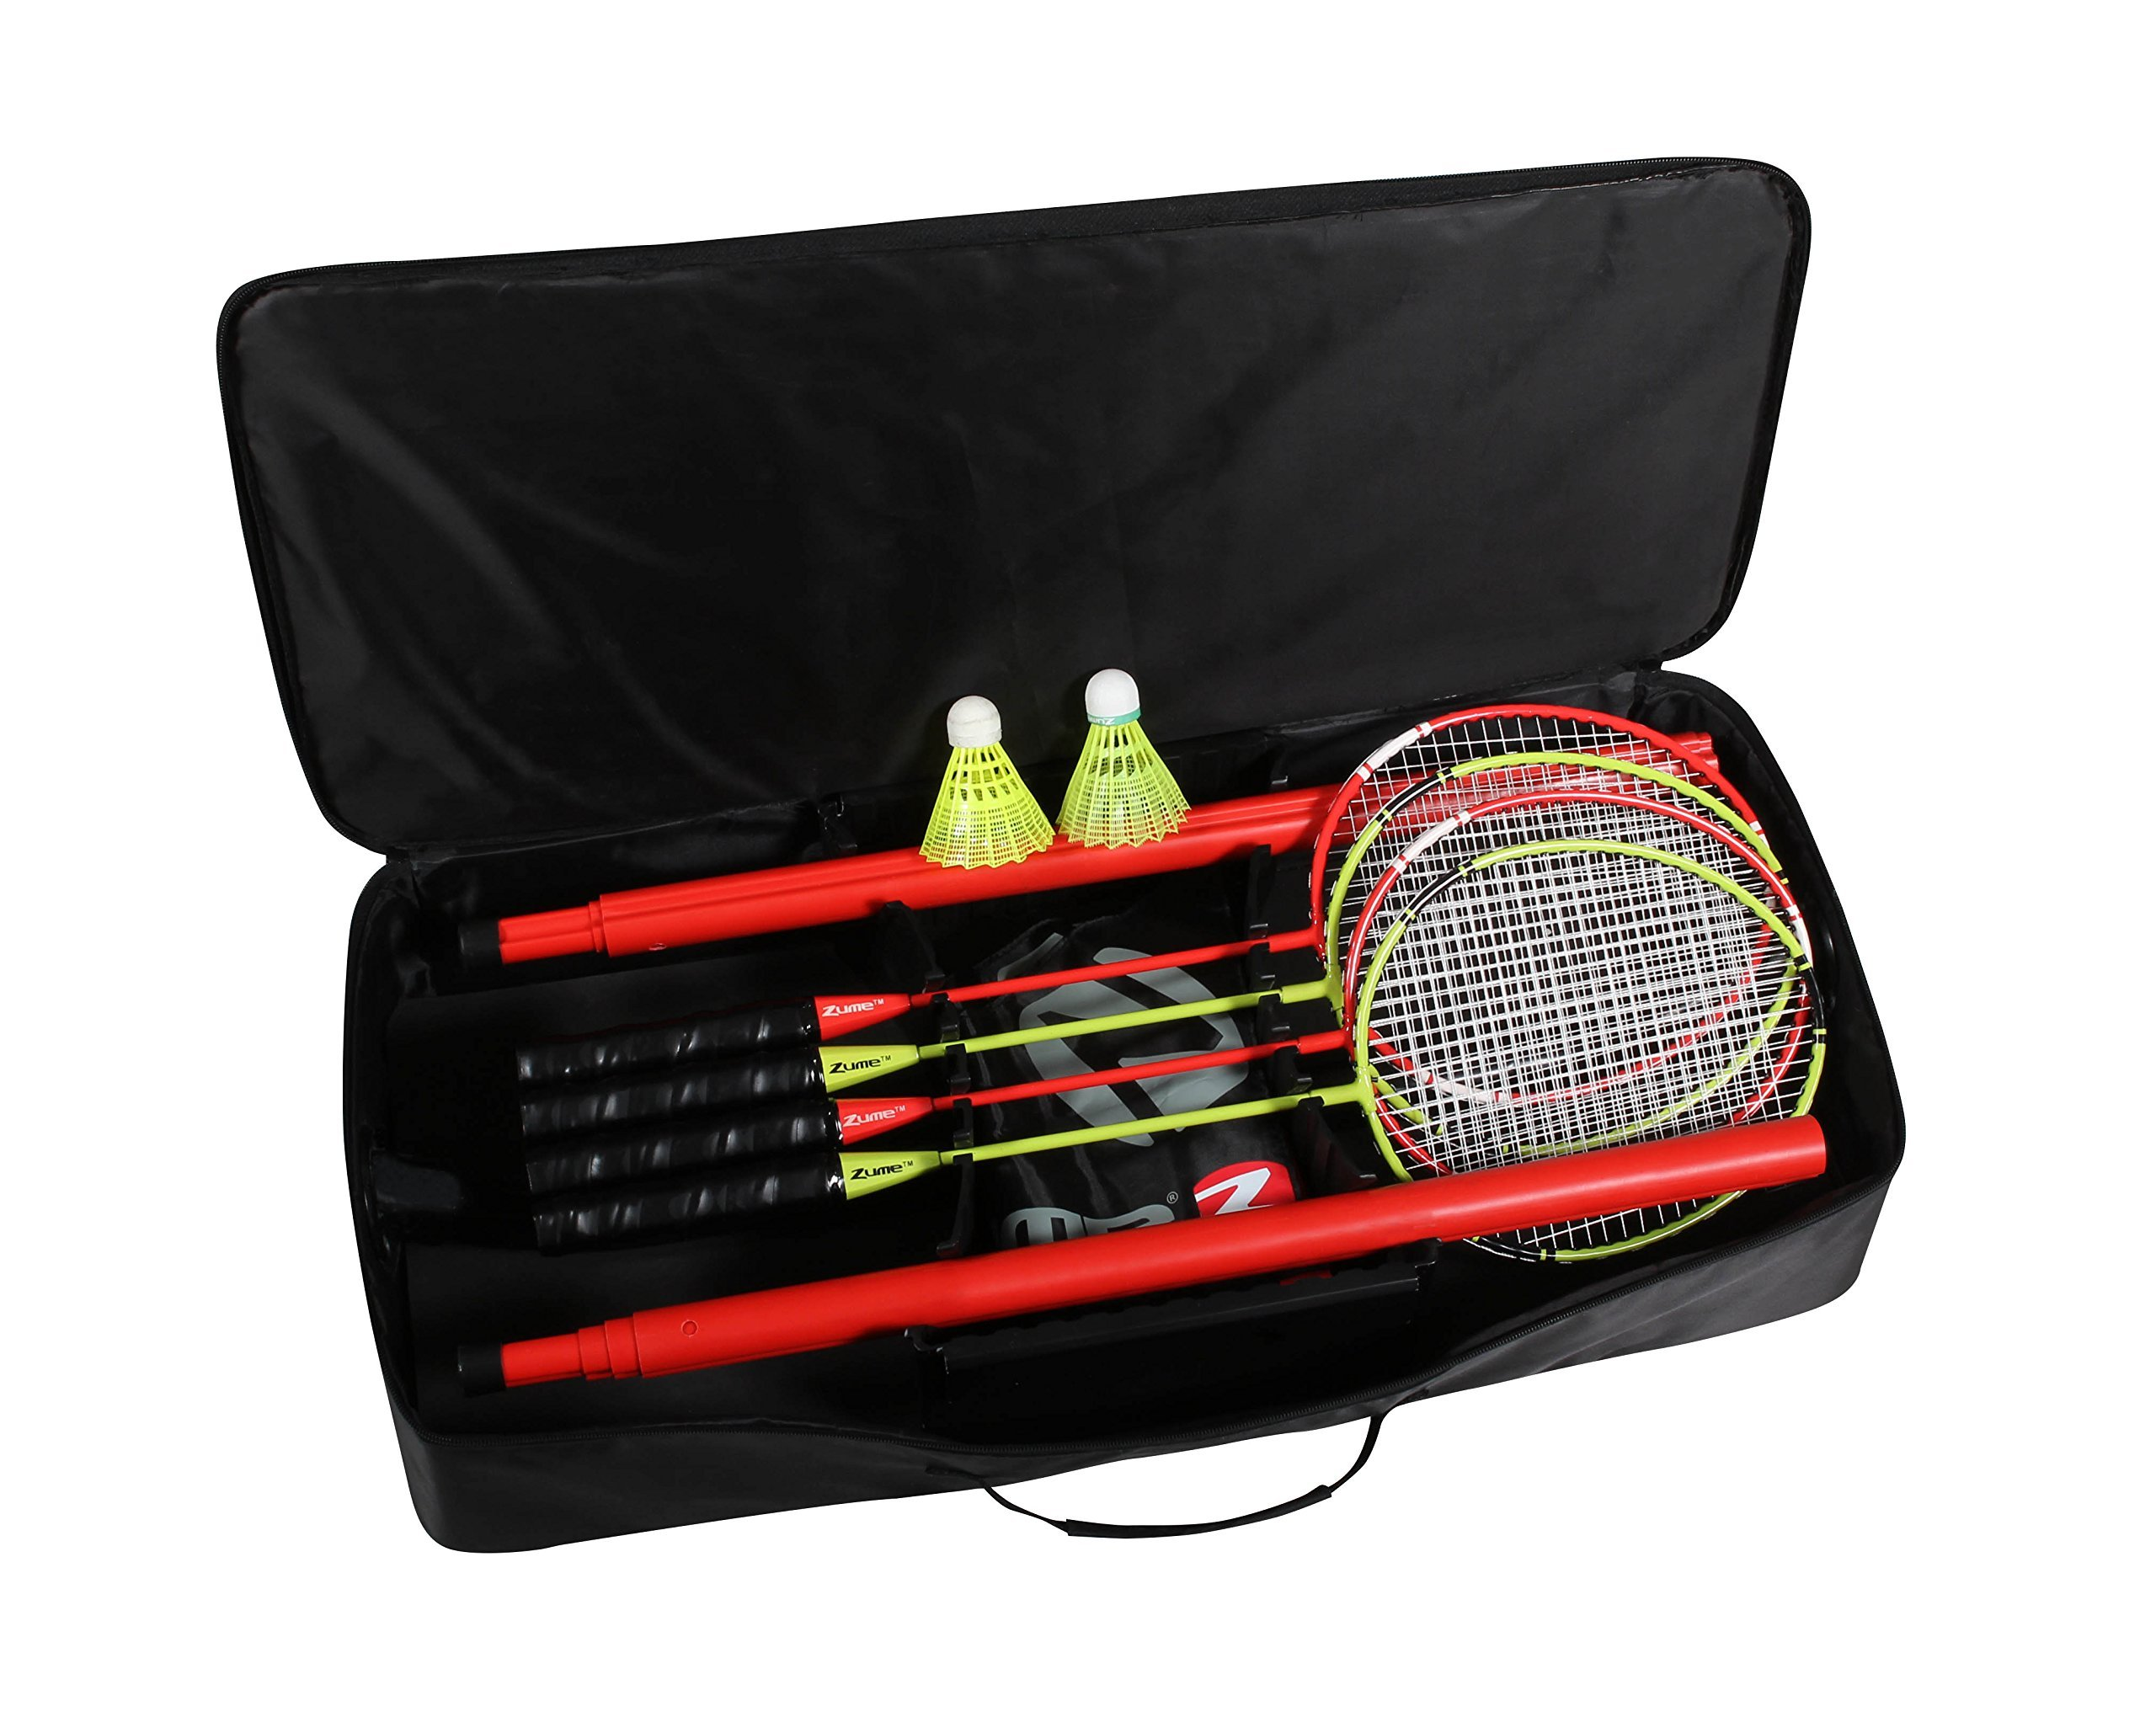 Zume Games Portable Badminton Set with Freestanding Base - Sets Up on Any Surface in Seconds - No Tools or Stakes Required (Renewed) by Zume (Image #3)